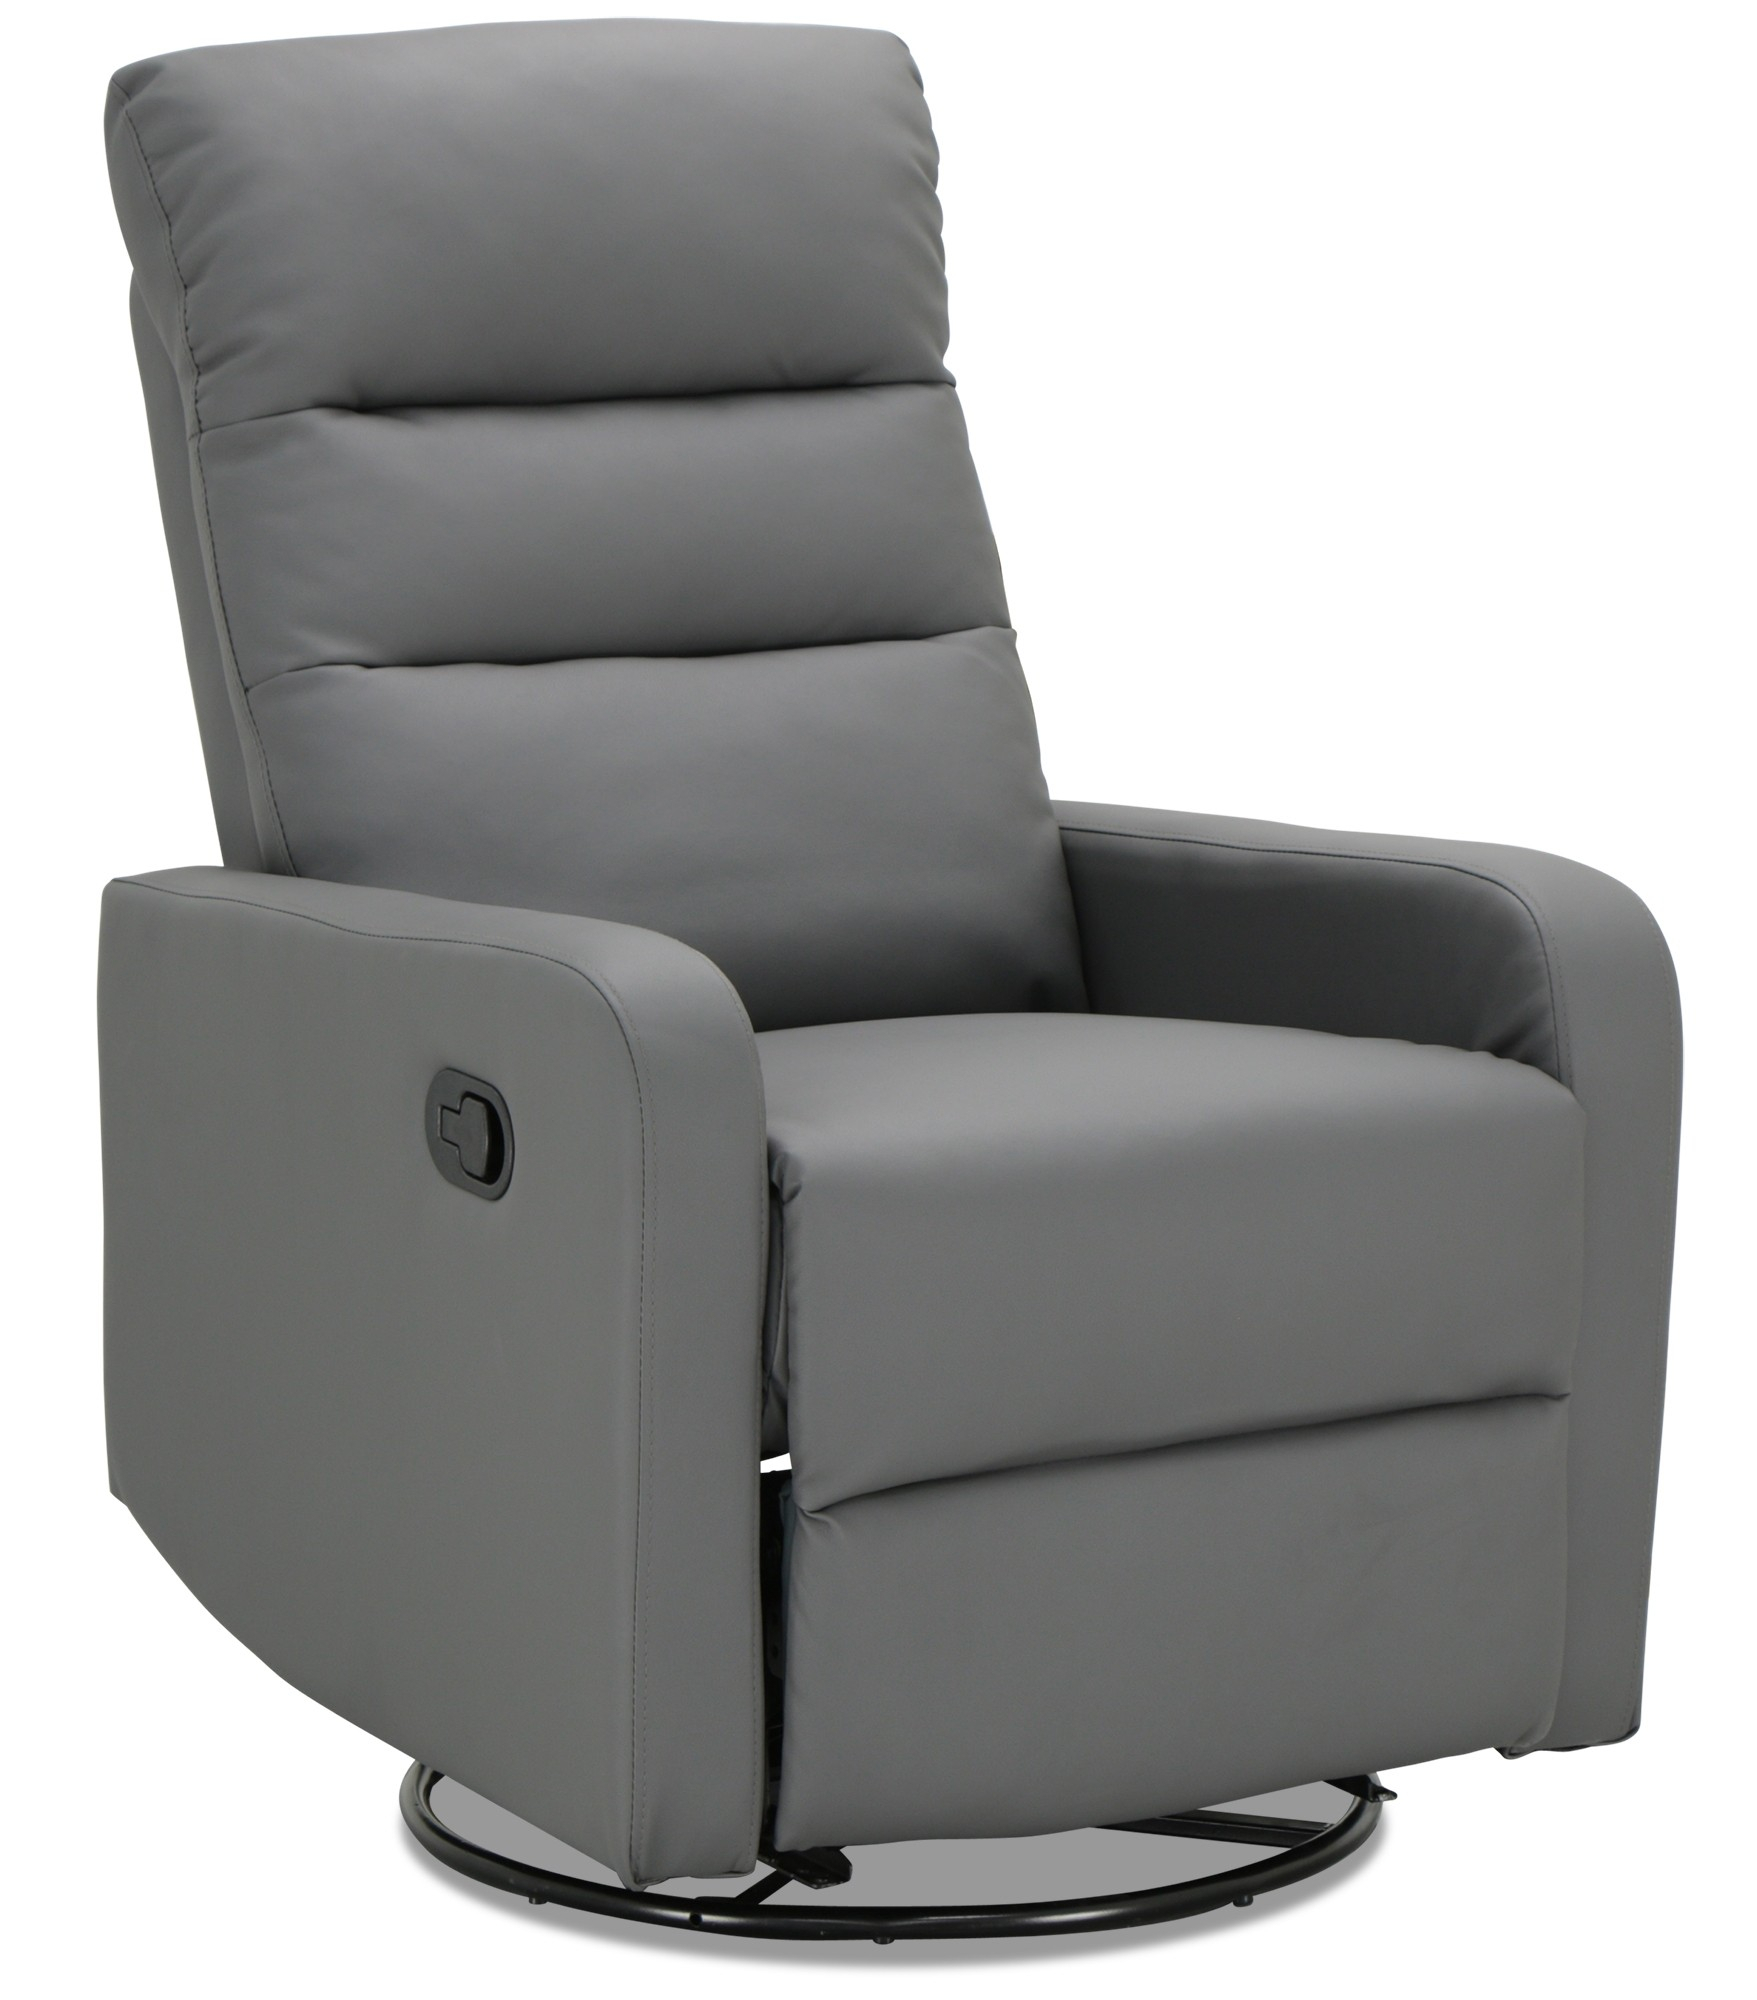 Rasco Recliner With Swivel In Pu Dark Grey | Furniture & Home Décor Intended For Dark Grey Swivel Chairs (Photo 12 of 20)